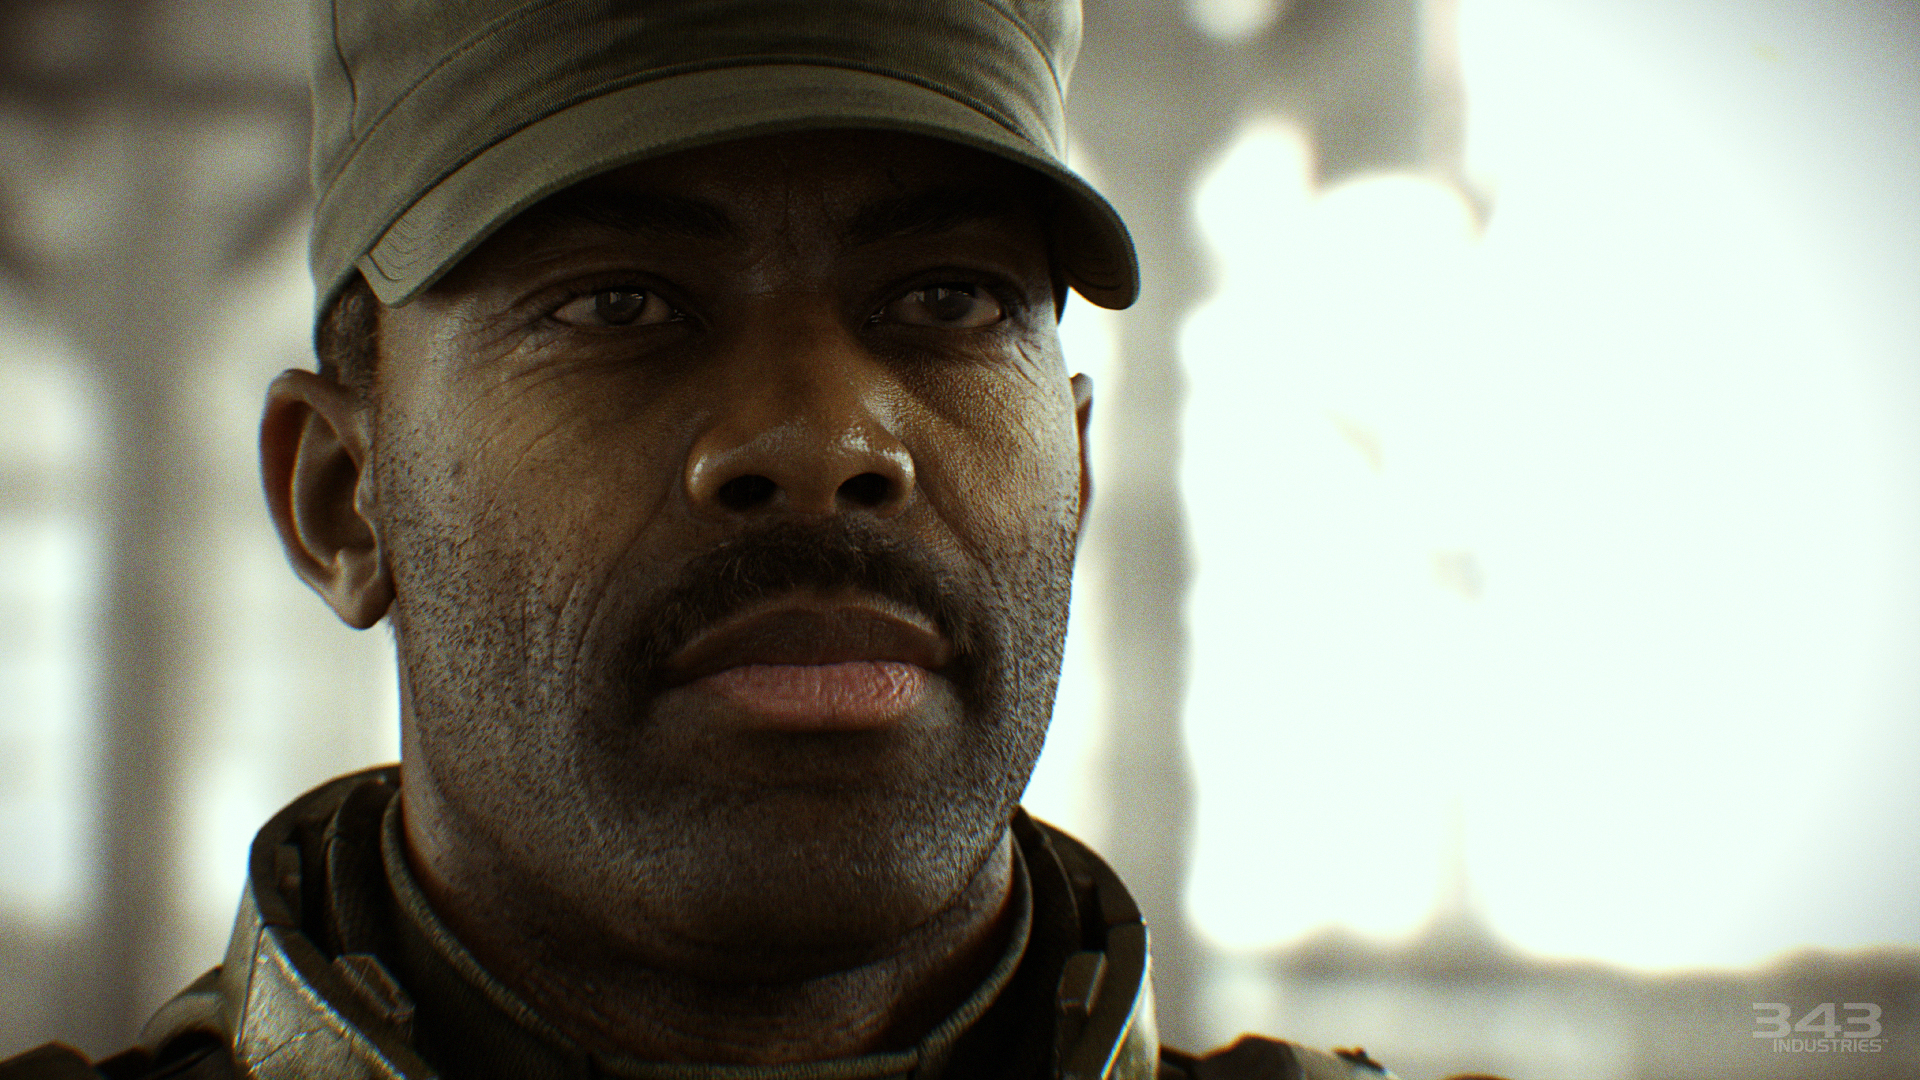 Halo 5' Spartan Locke Gets A New Voice Actor, Ike Amadi Replaces ...